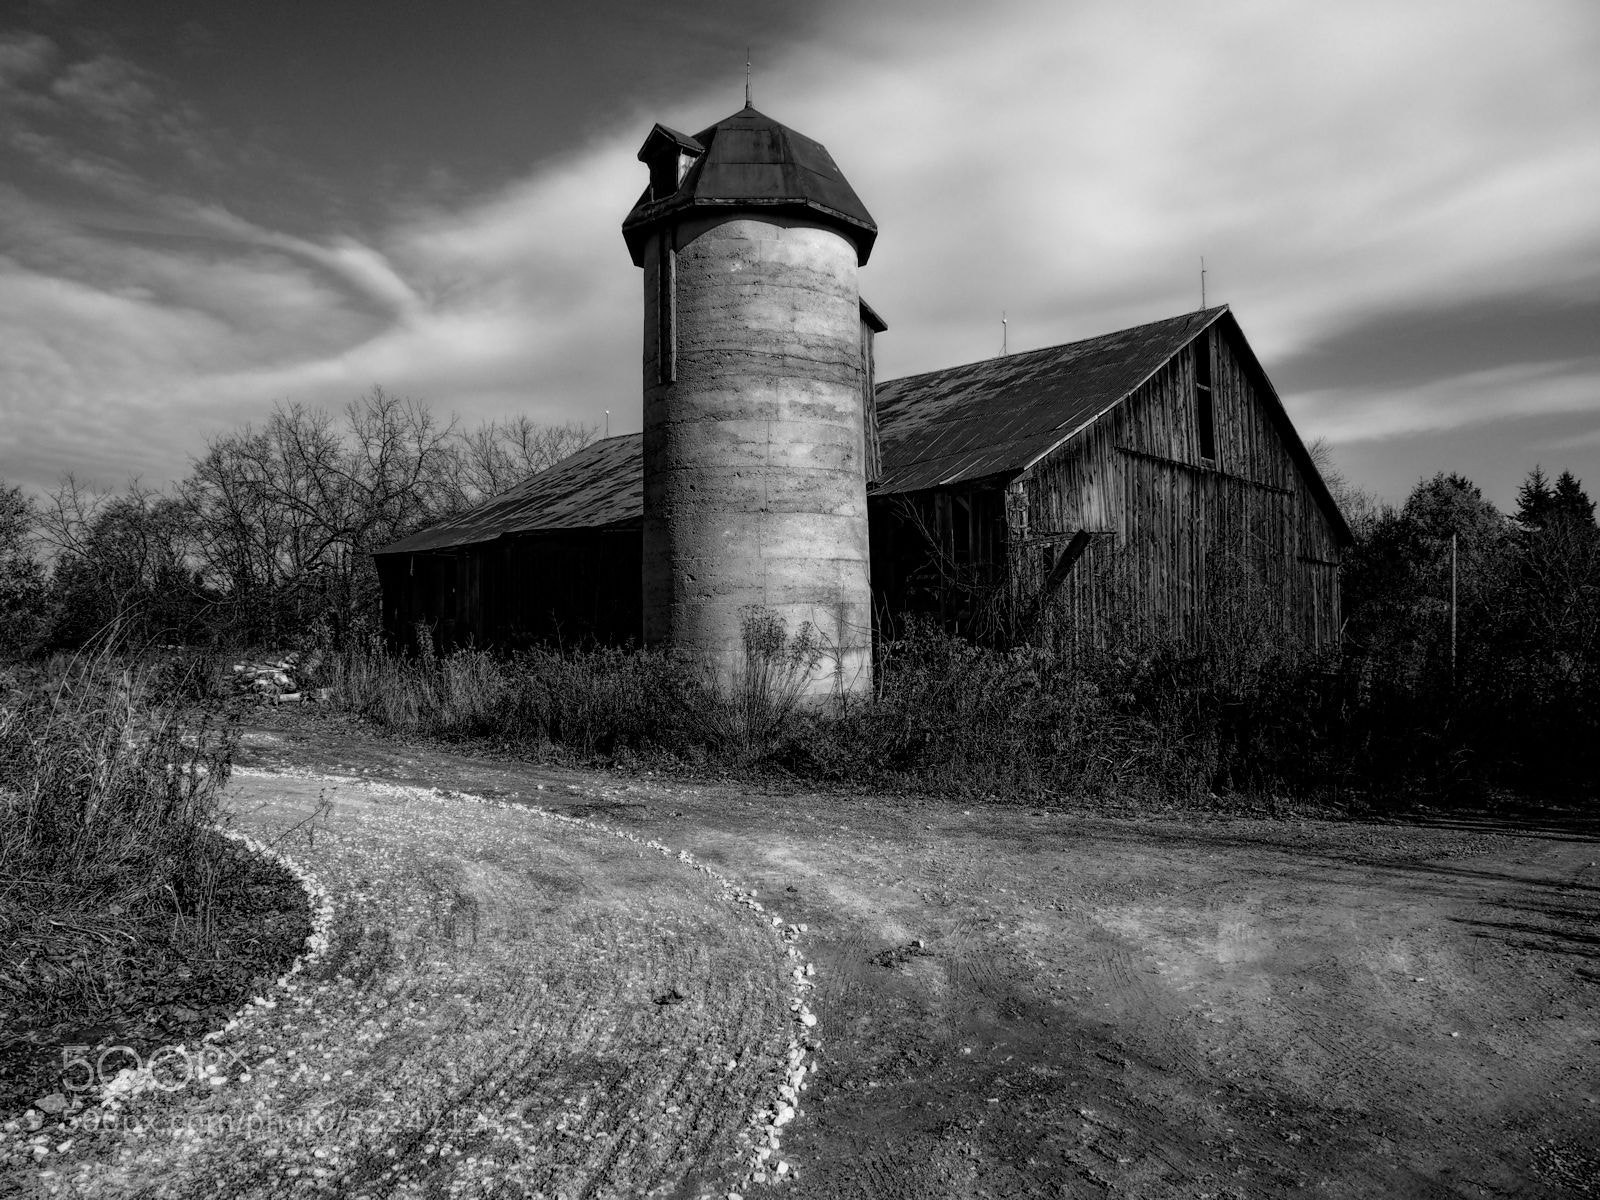 Photograph Barn on the Corner by Grant MacDonald on 500px